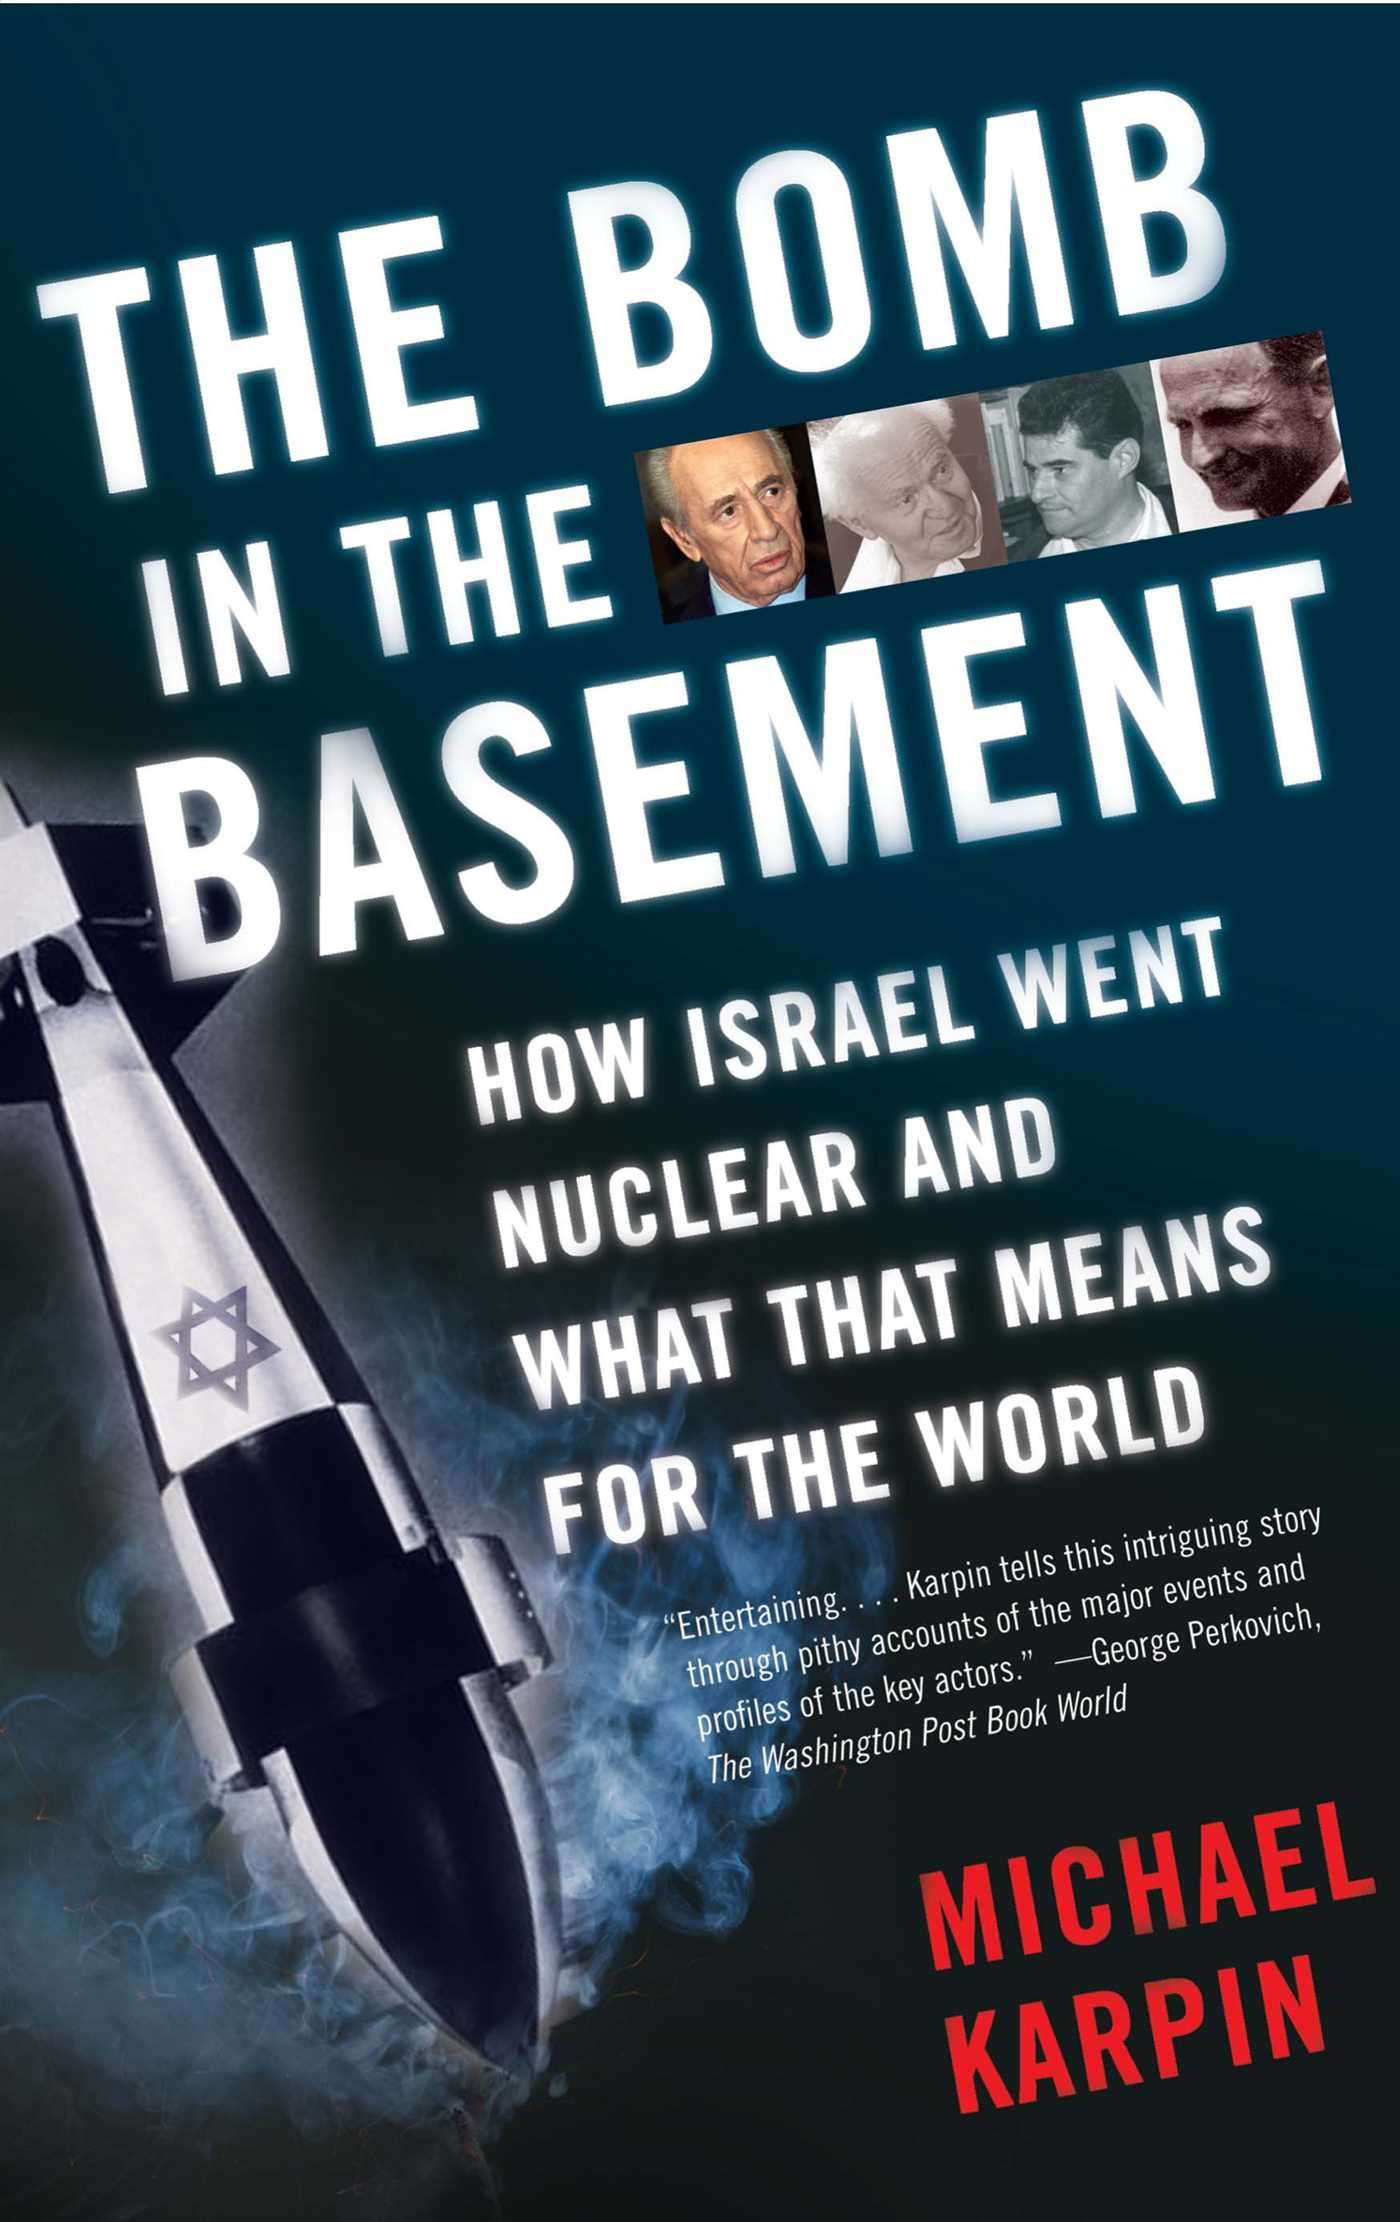 The-bomb-in-the-basement-9780743265959_hr